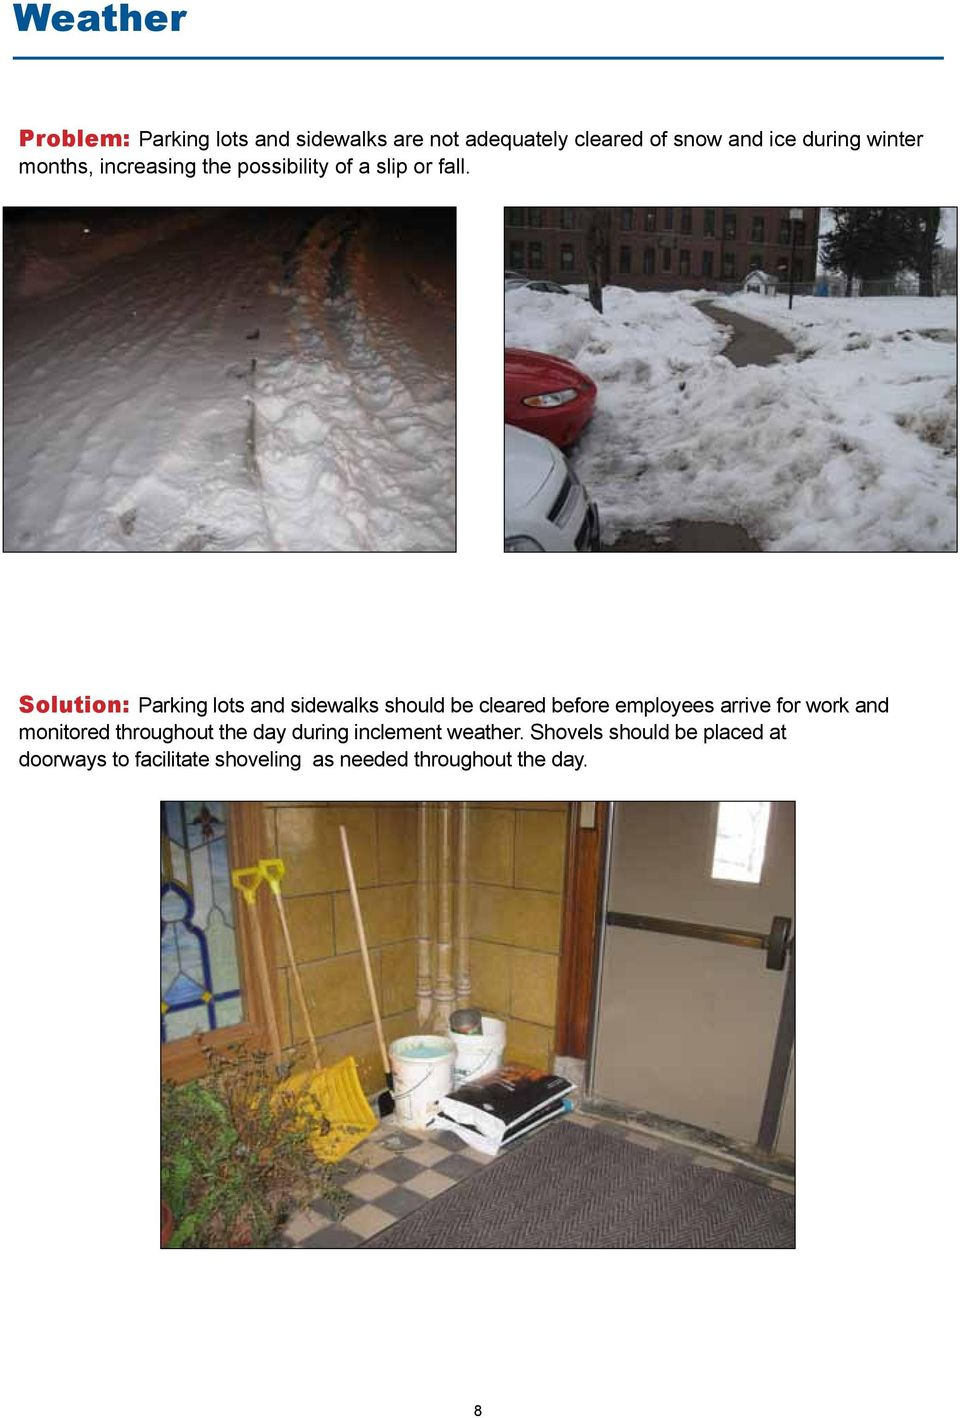 Solution: Parking lots and sidewalks should be cleared before employees arrive for work and